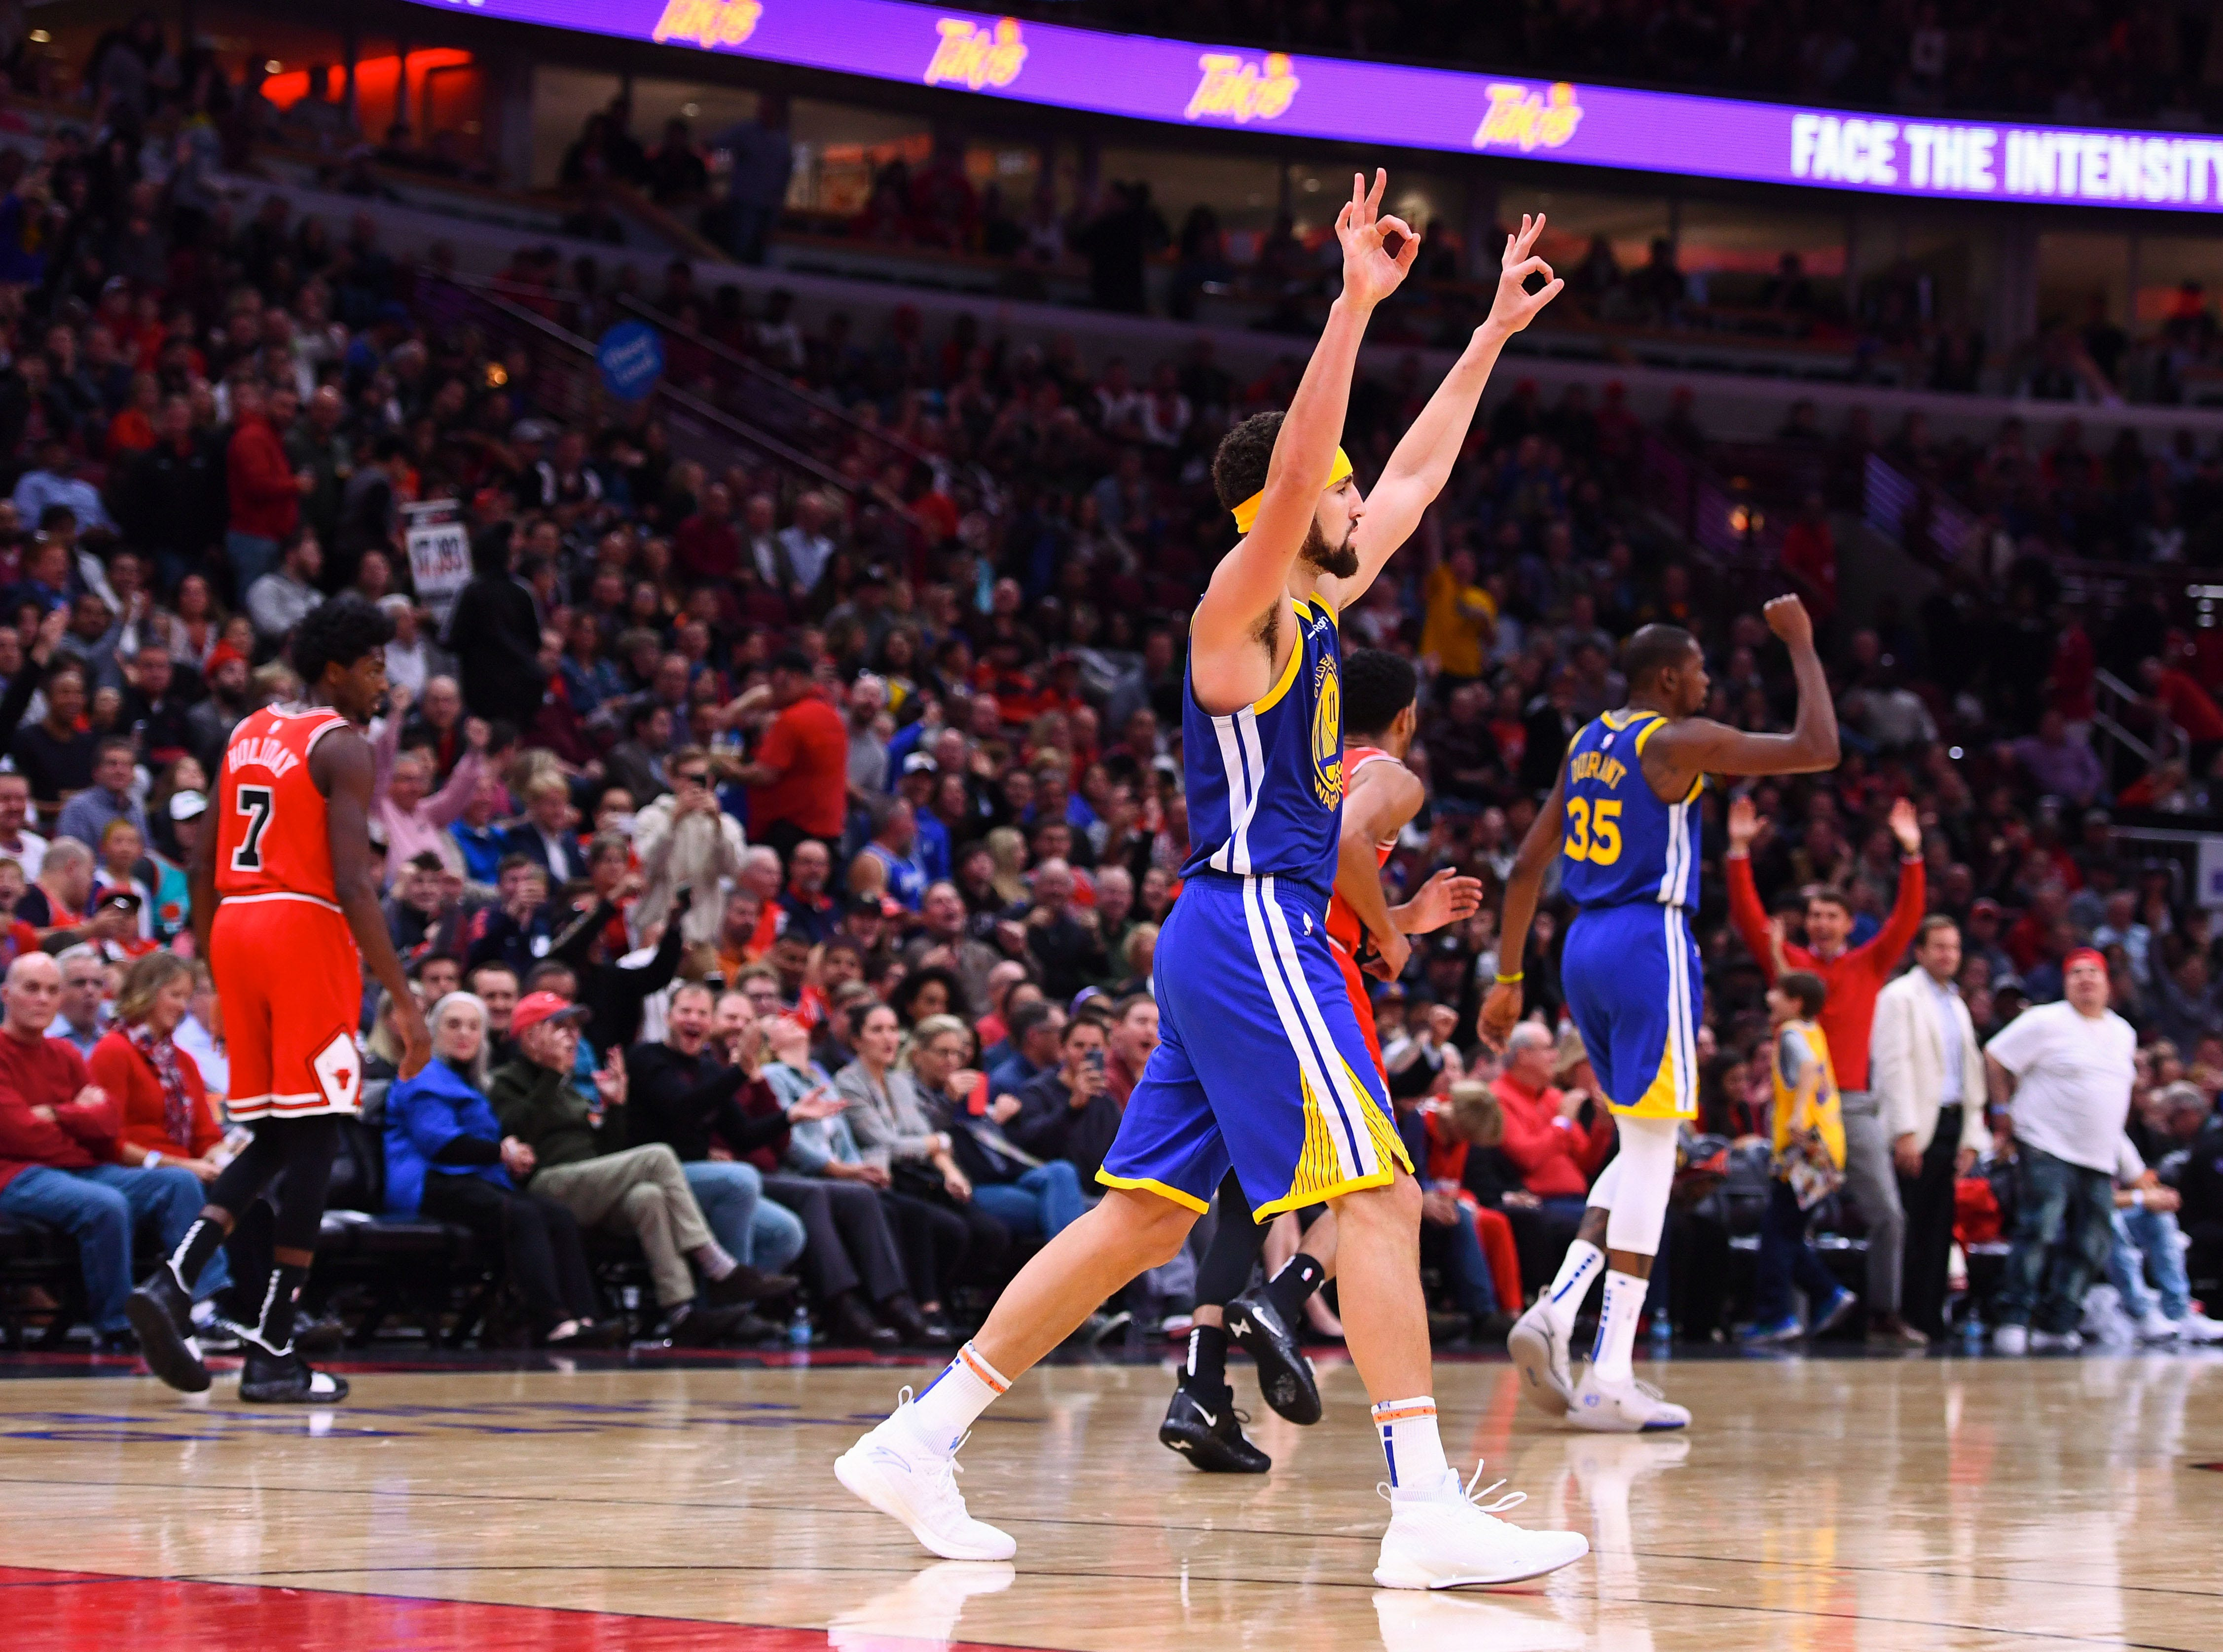 Oct. 29: Golden State Warriors guard Klay Thompson reacts after making a record-breaking 14th 3-pointer against the Chicago Bulls.